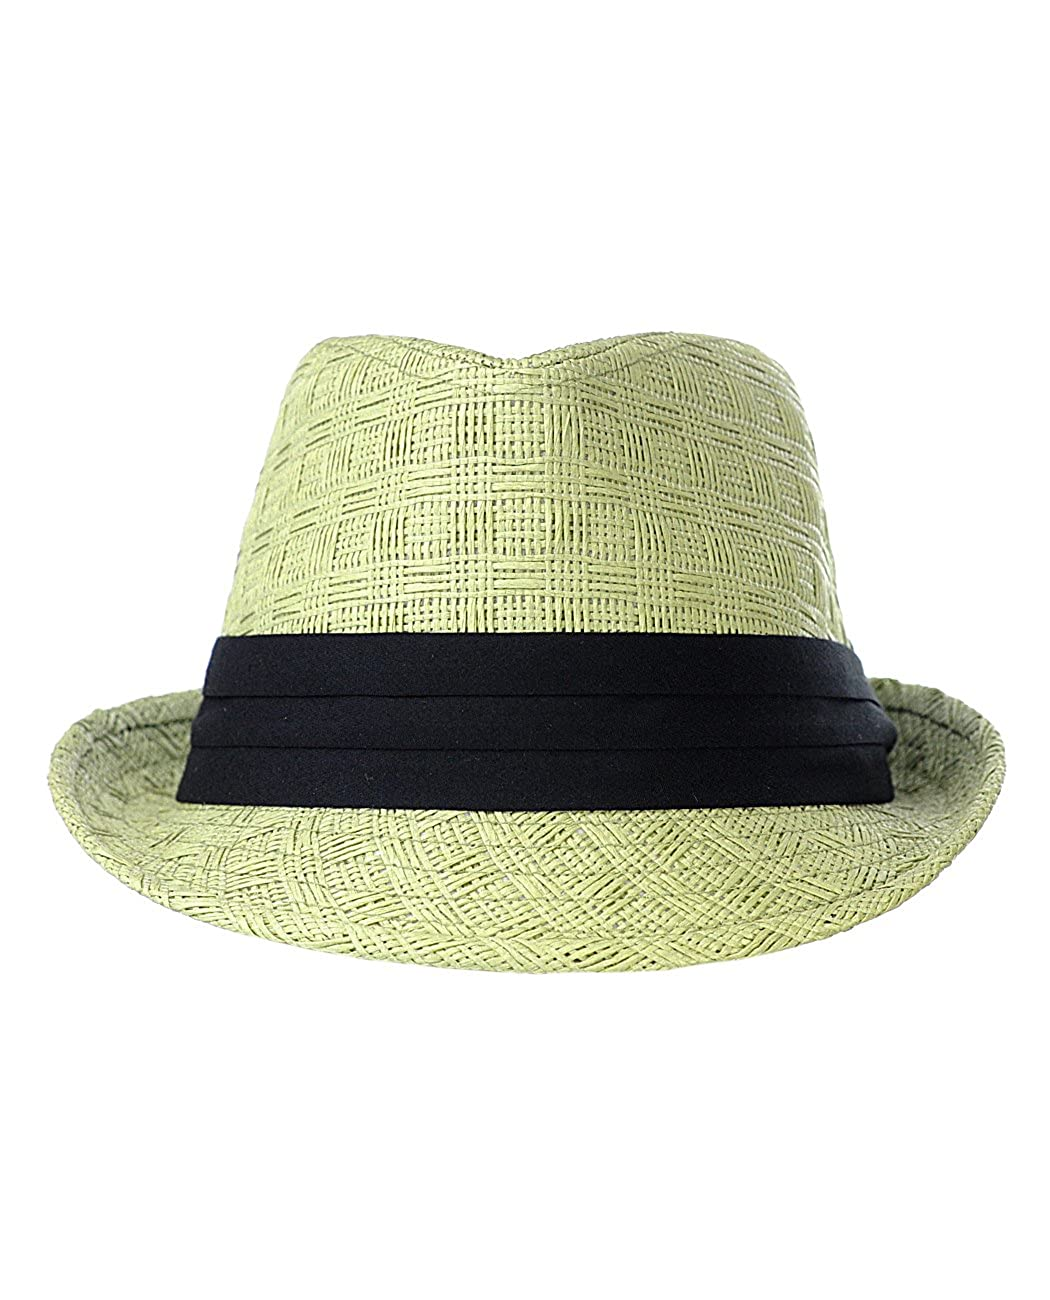 NYFASHION101 Womens Paper Woven Straw Fedora Hat w// 3 Tier Band